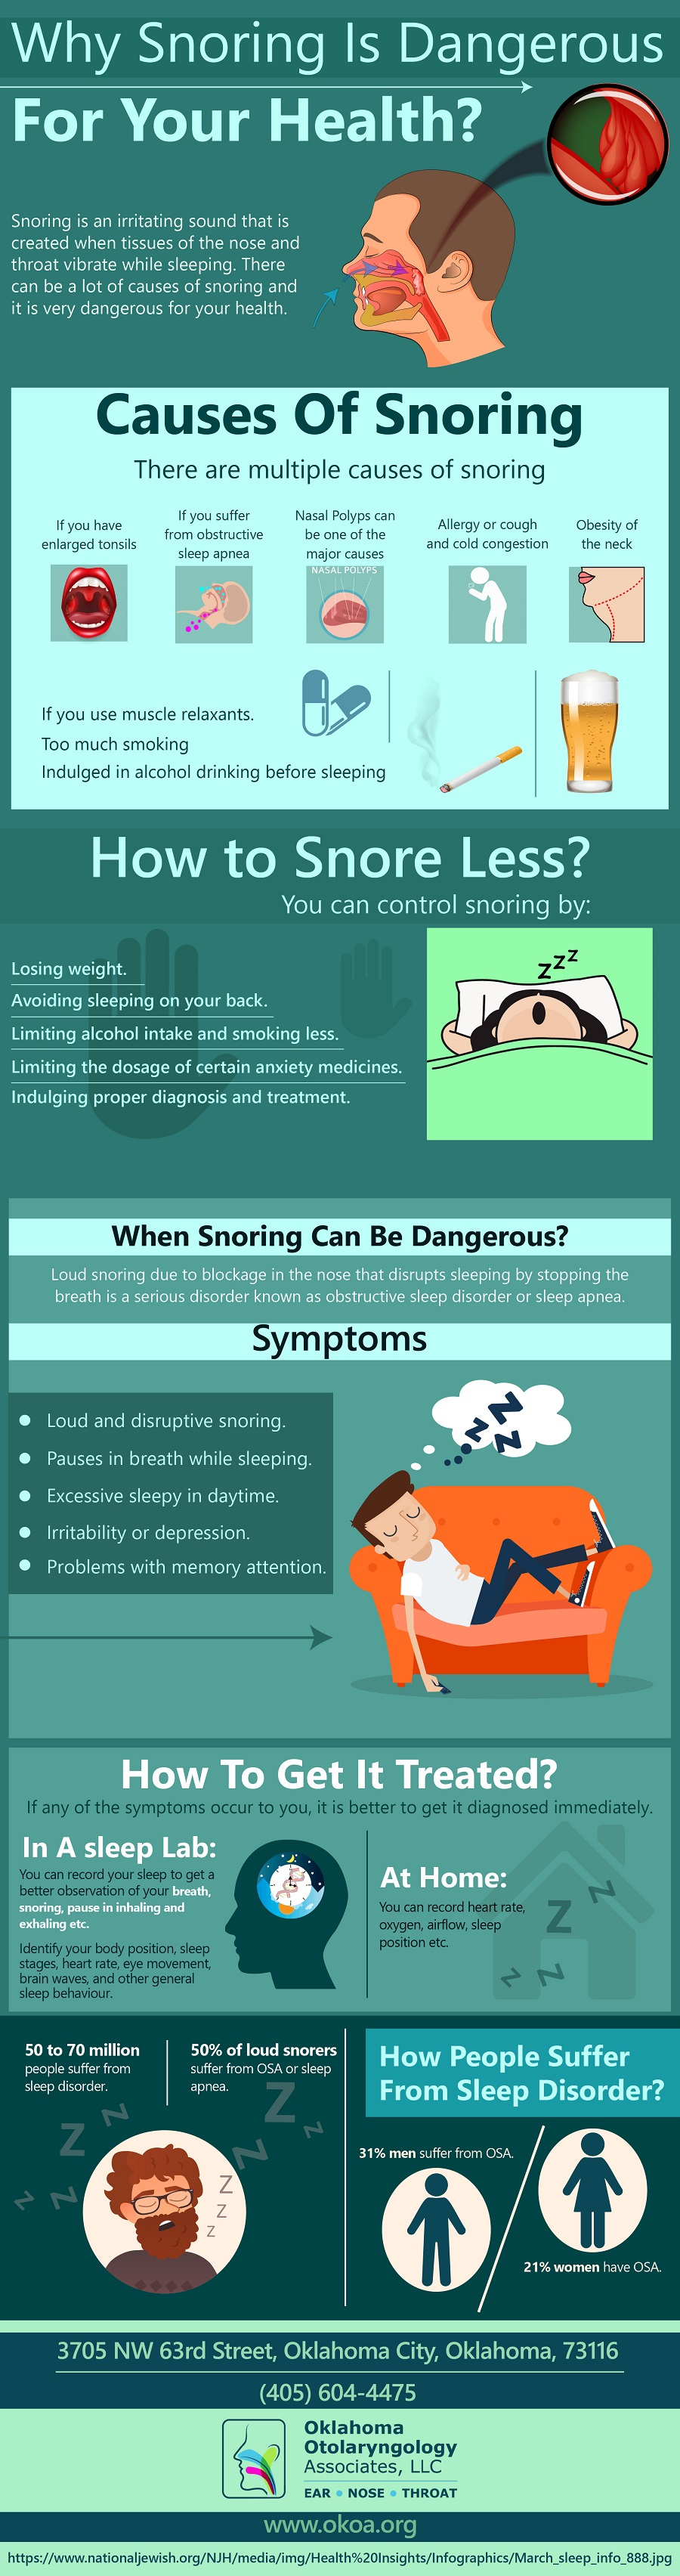 Why Snoring Is Dangerous For Your Health